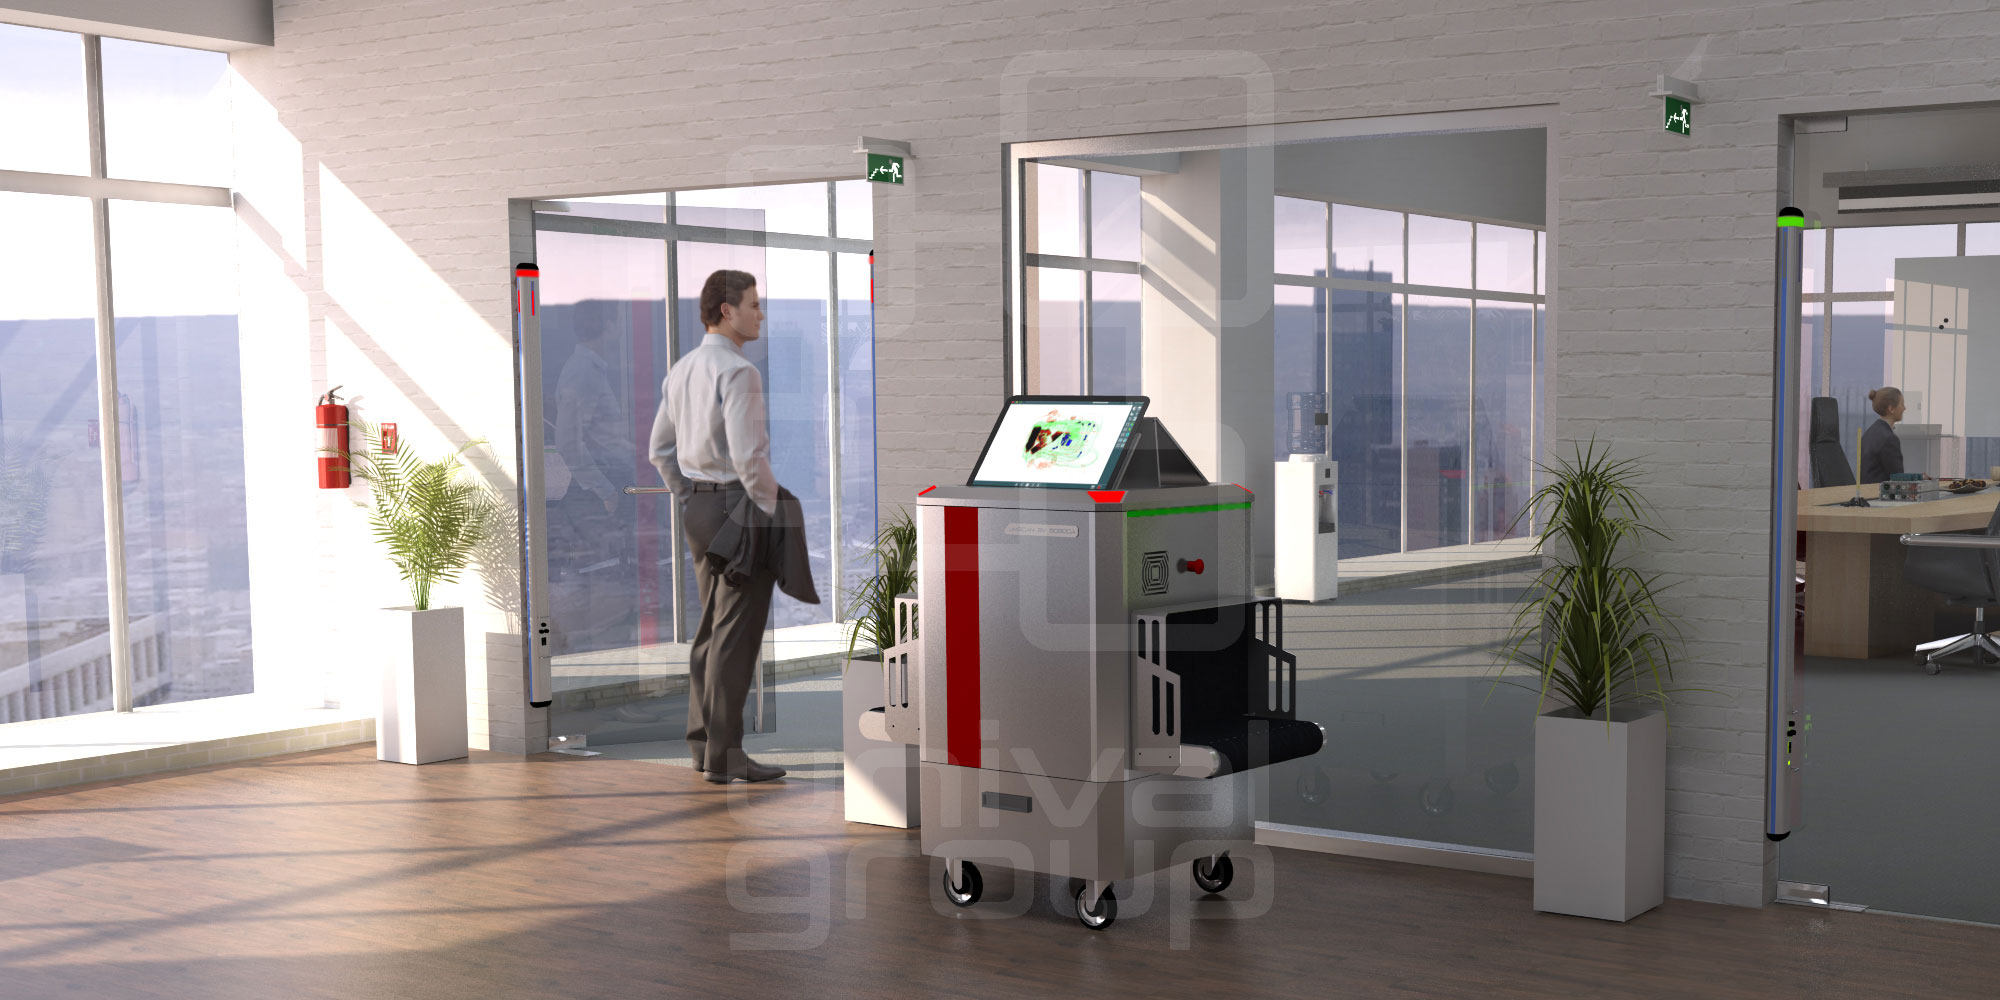 unival group | Access security measures